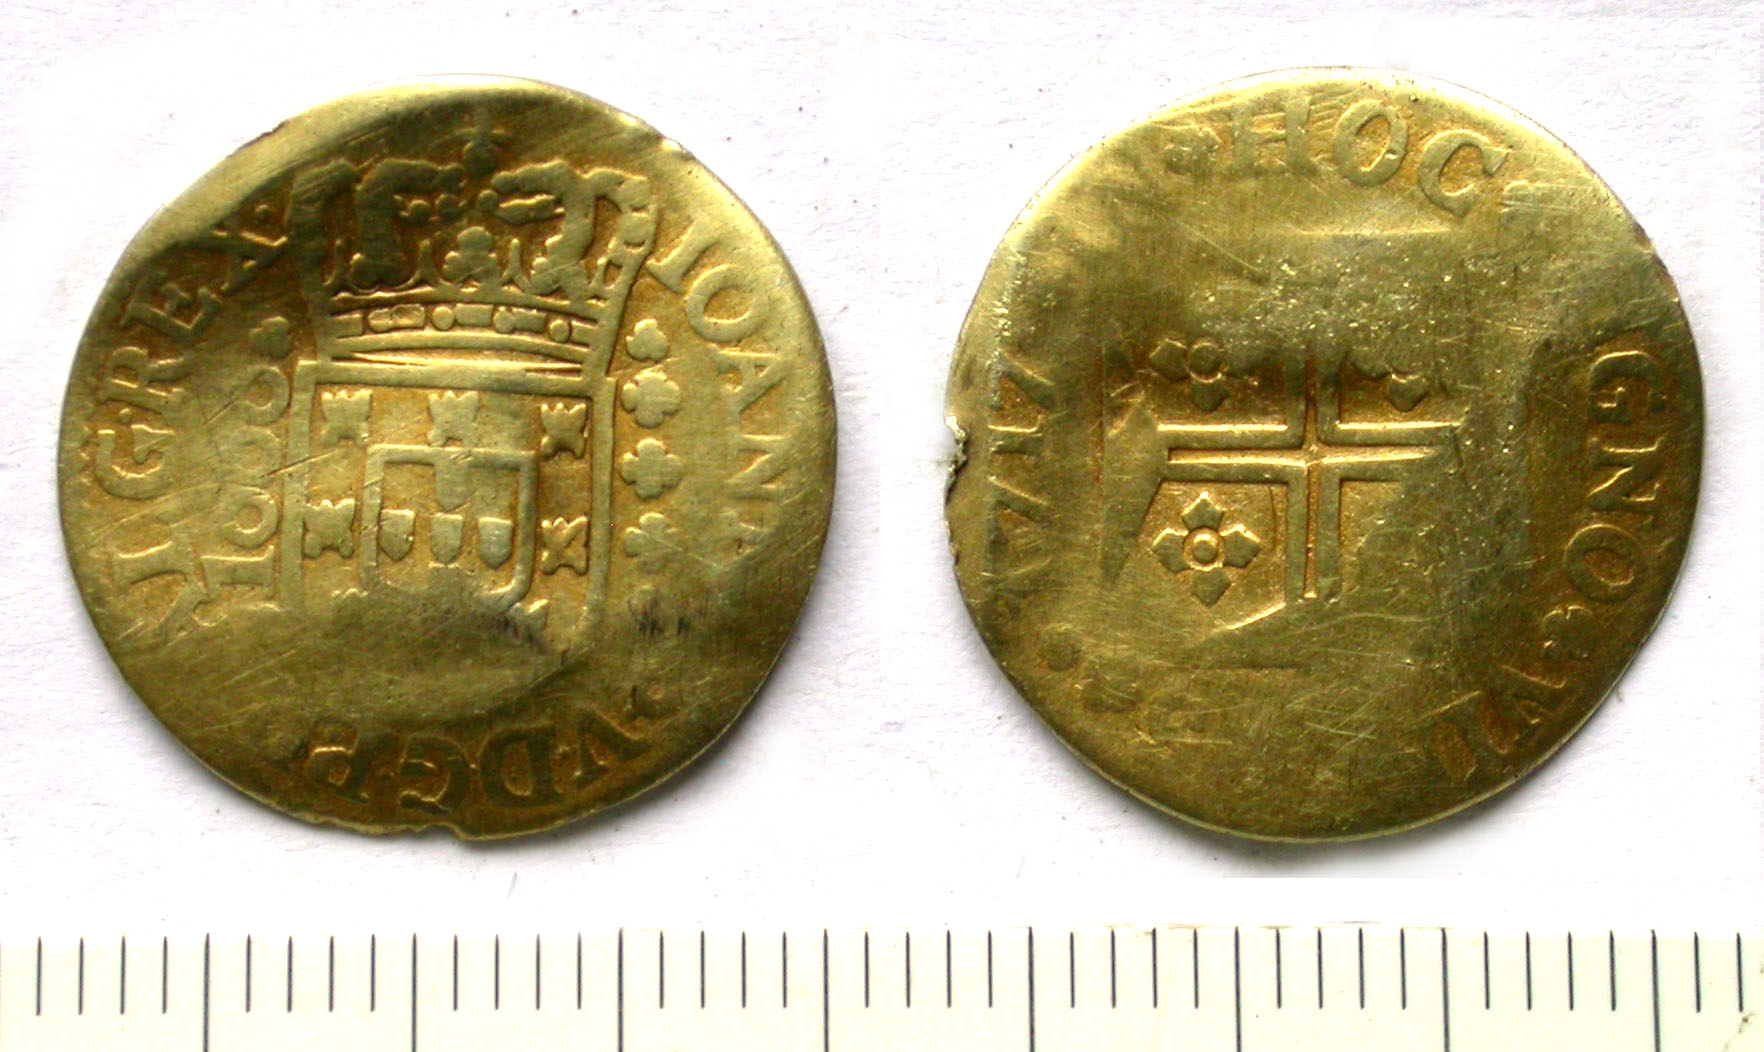 Portuguese gold coin; a moeda, which would have circulated in Britain